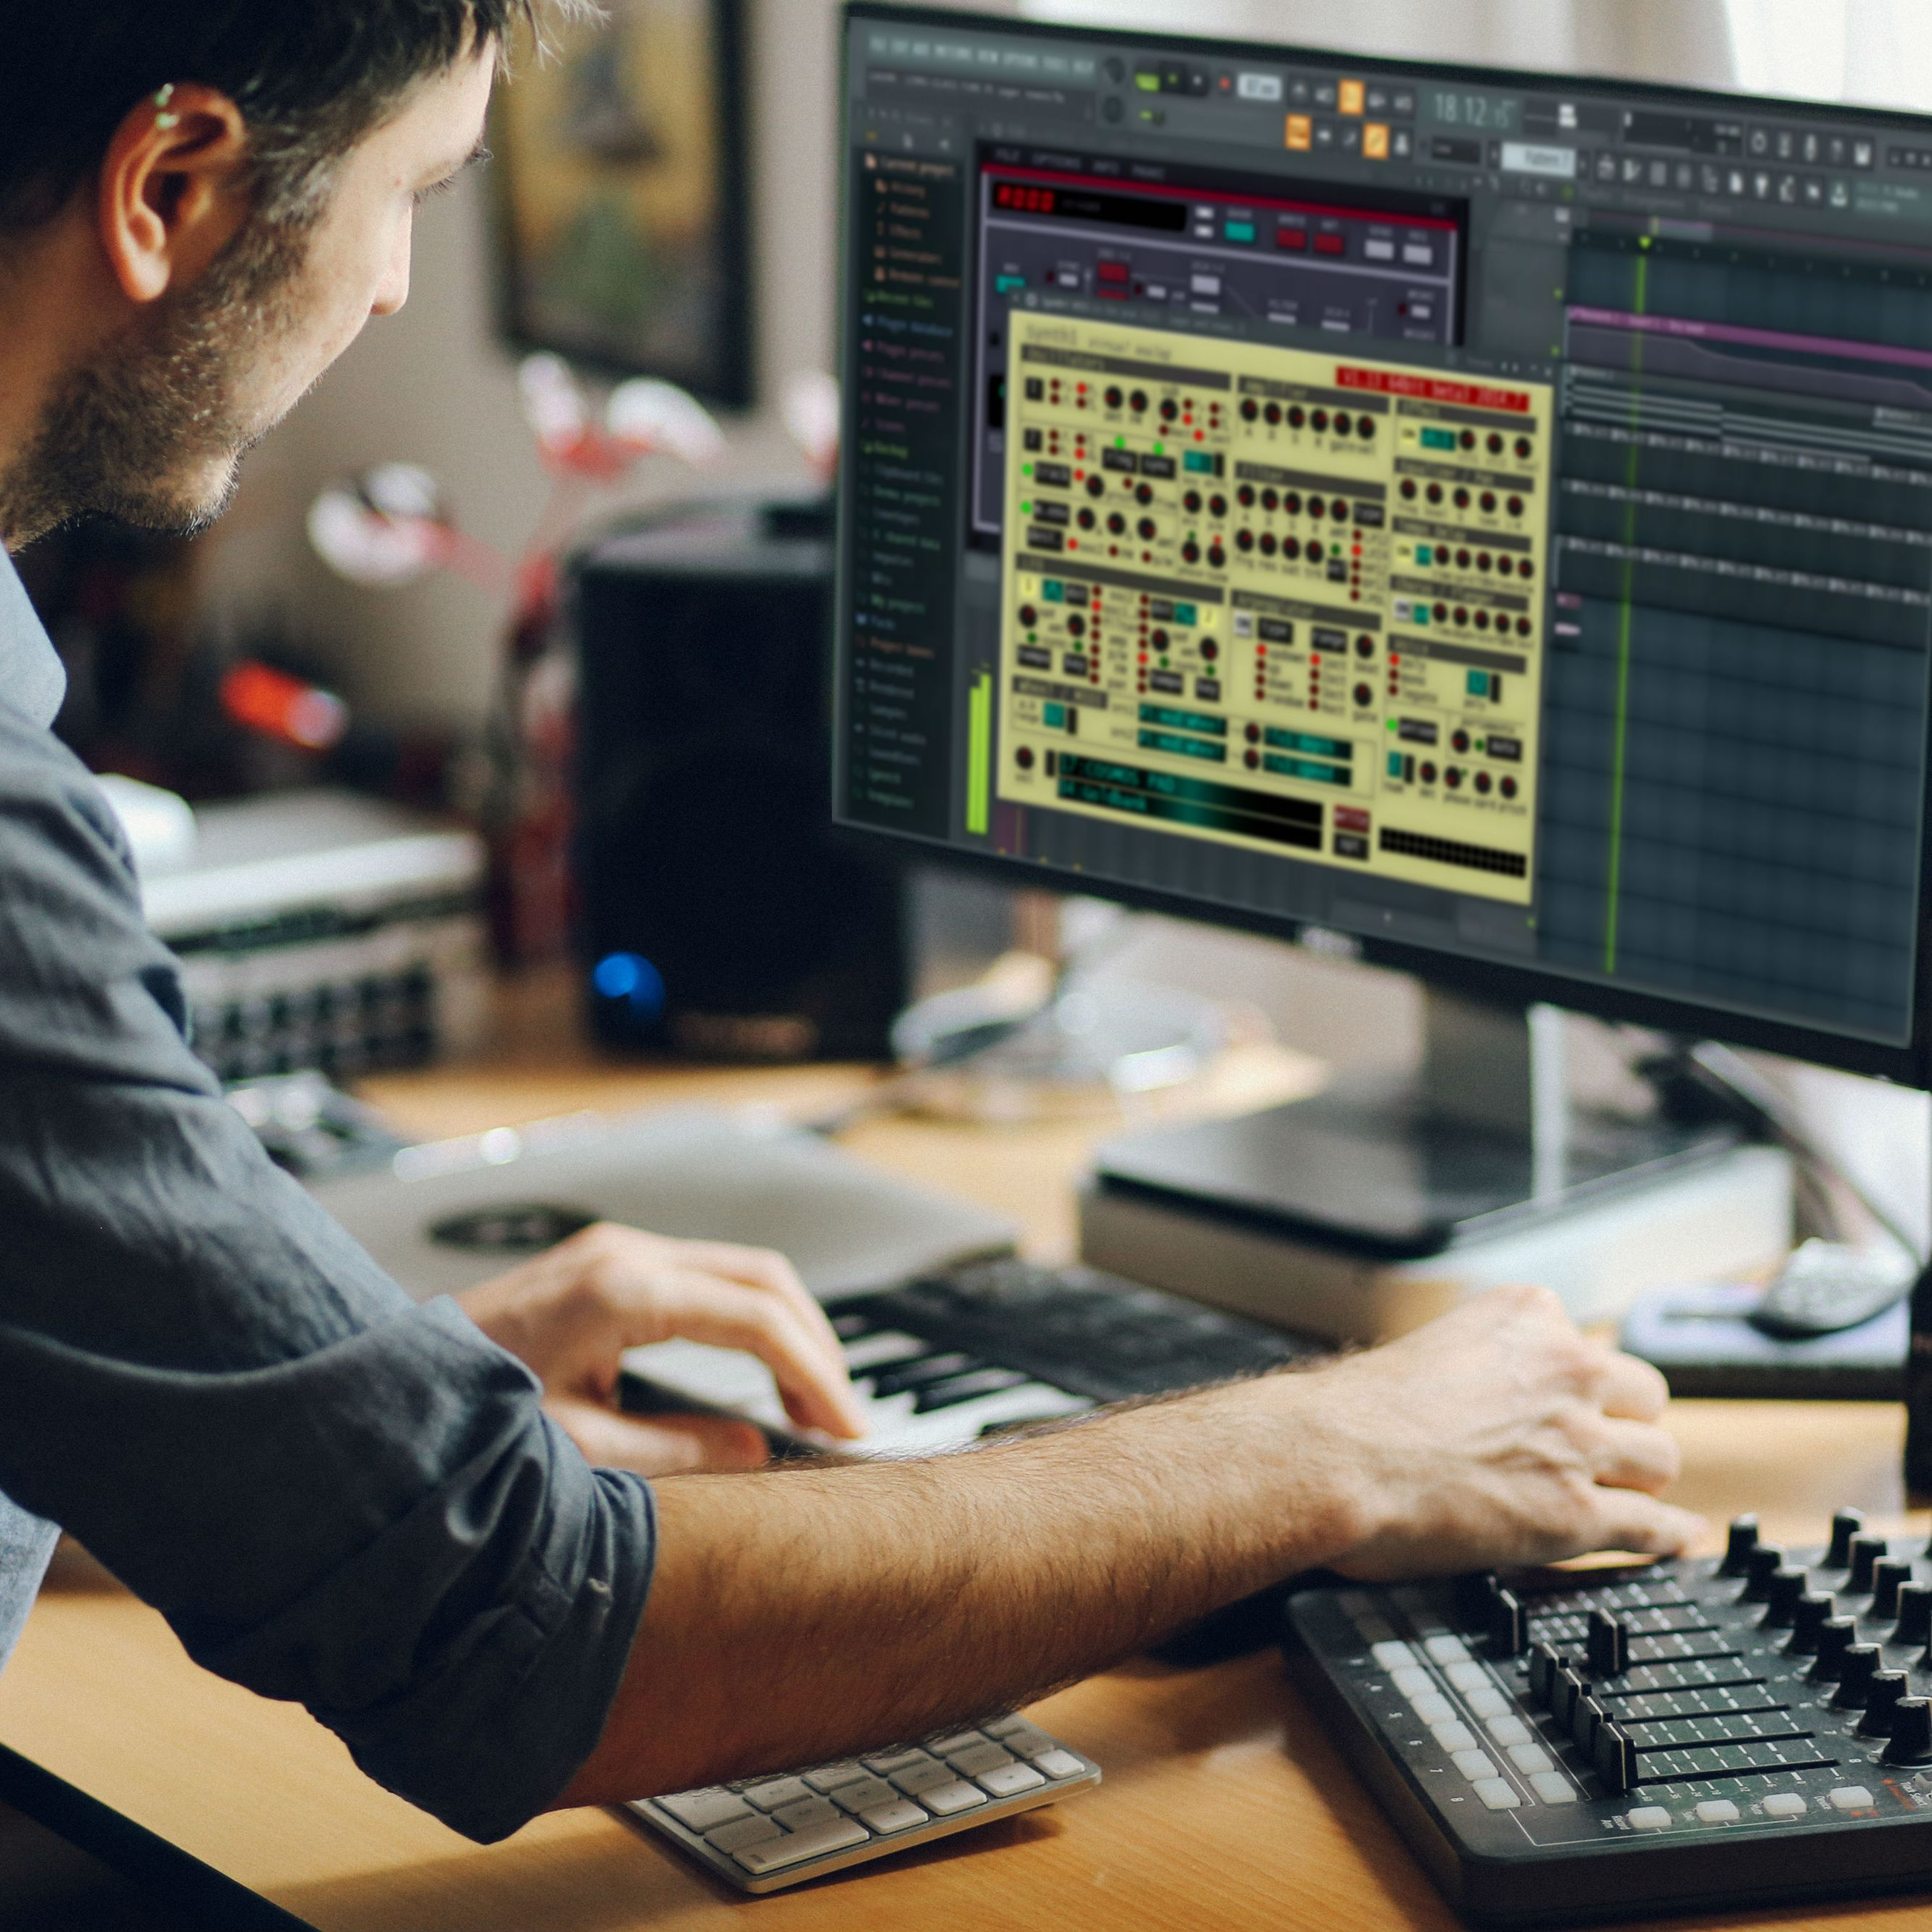 What Are VST Plugins and What Do They Do?